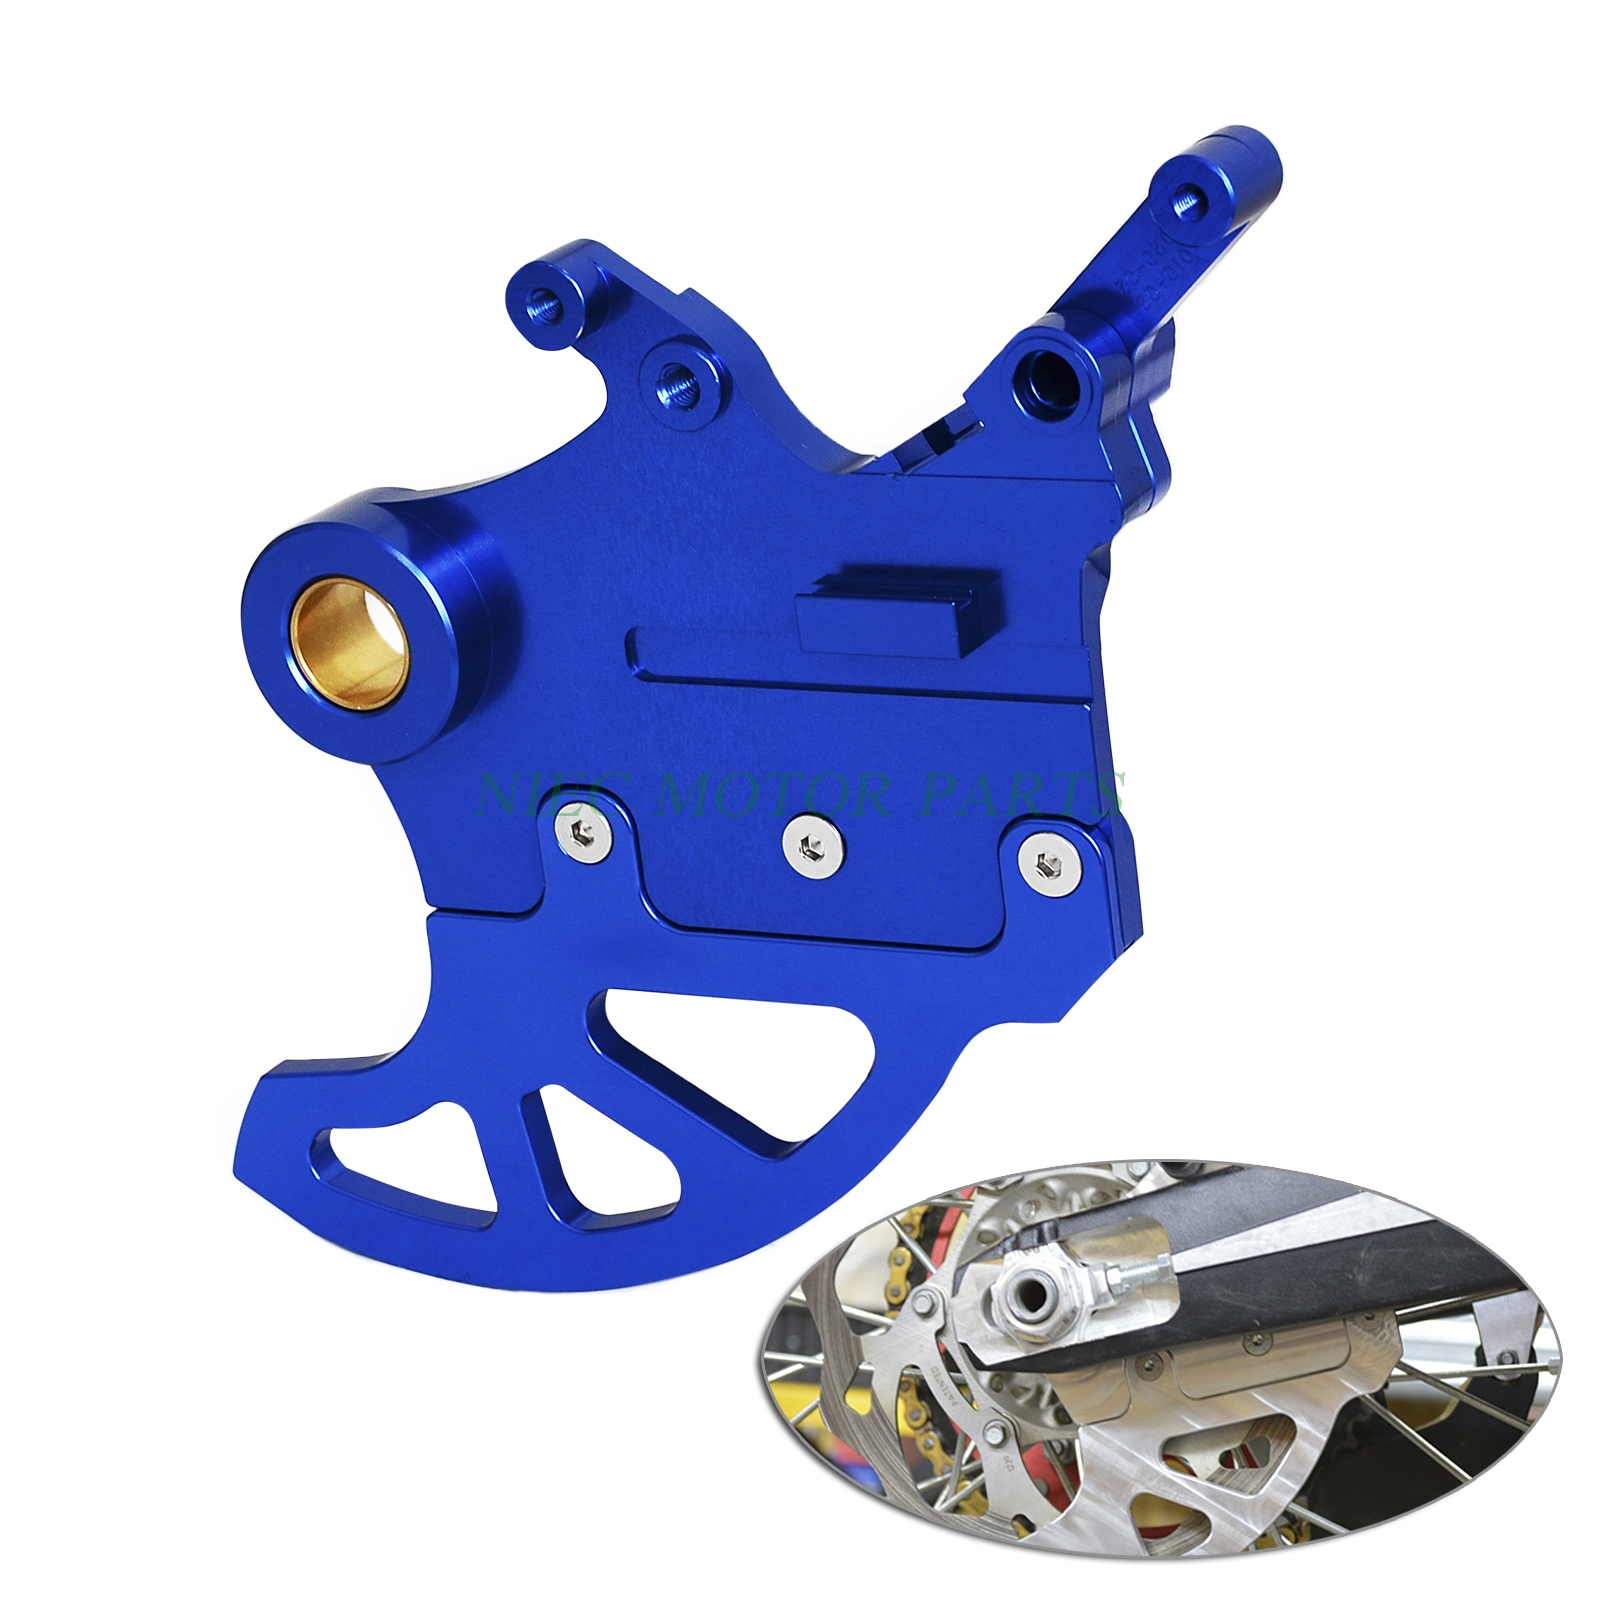 H2CNC Brake Disc Guard Protector For Yamaha YZ125 YZ250 2006-2017 YZ250F YZ450F 2006-2008 Motocross Enduro Supermoto motorbike scooter cnc aluminum alloy rotatable spinable cooling fan cap cover protector guard for yamaha bws x 125 cygnus 125